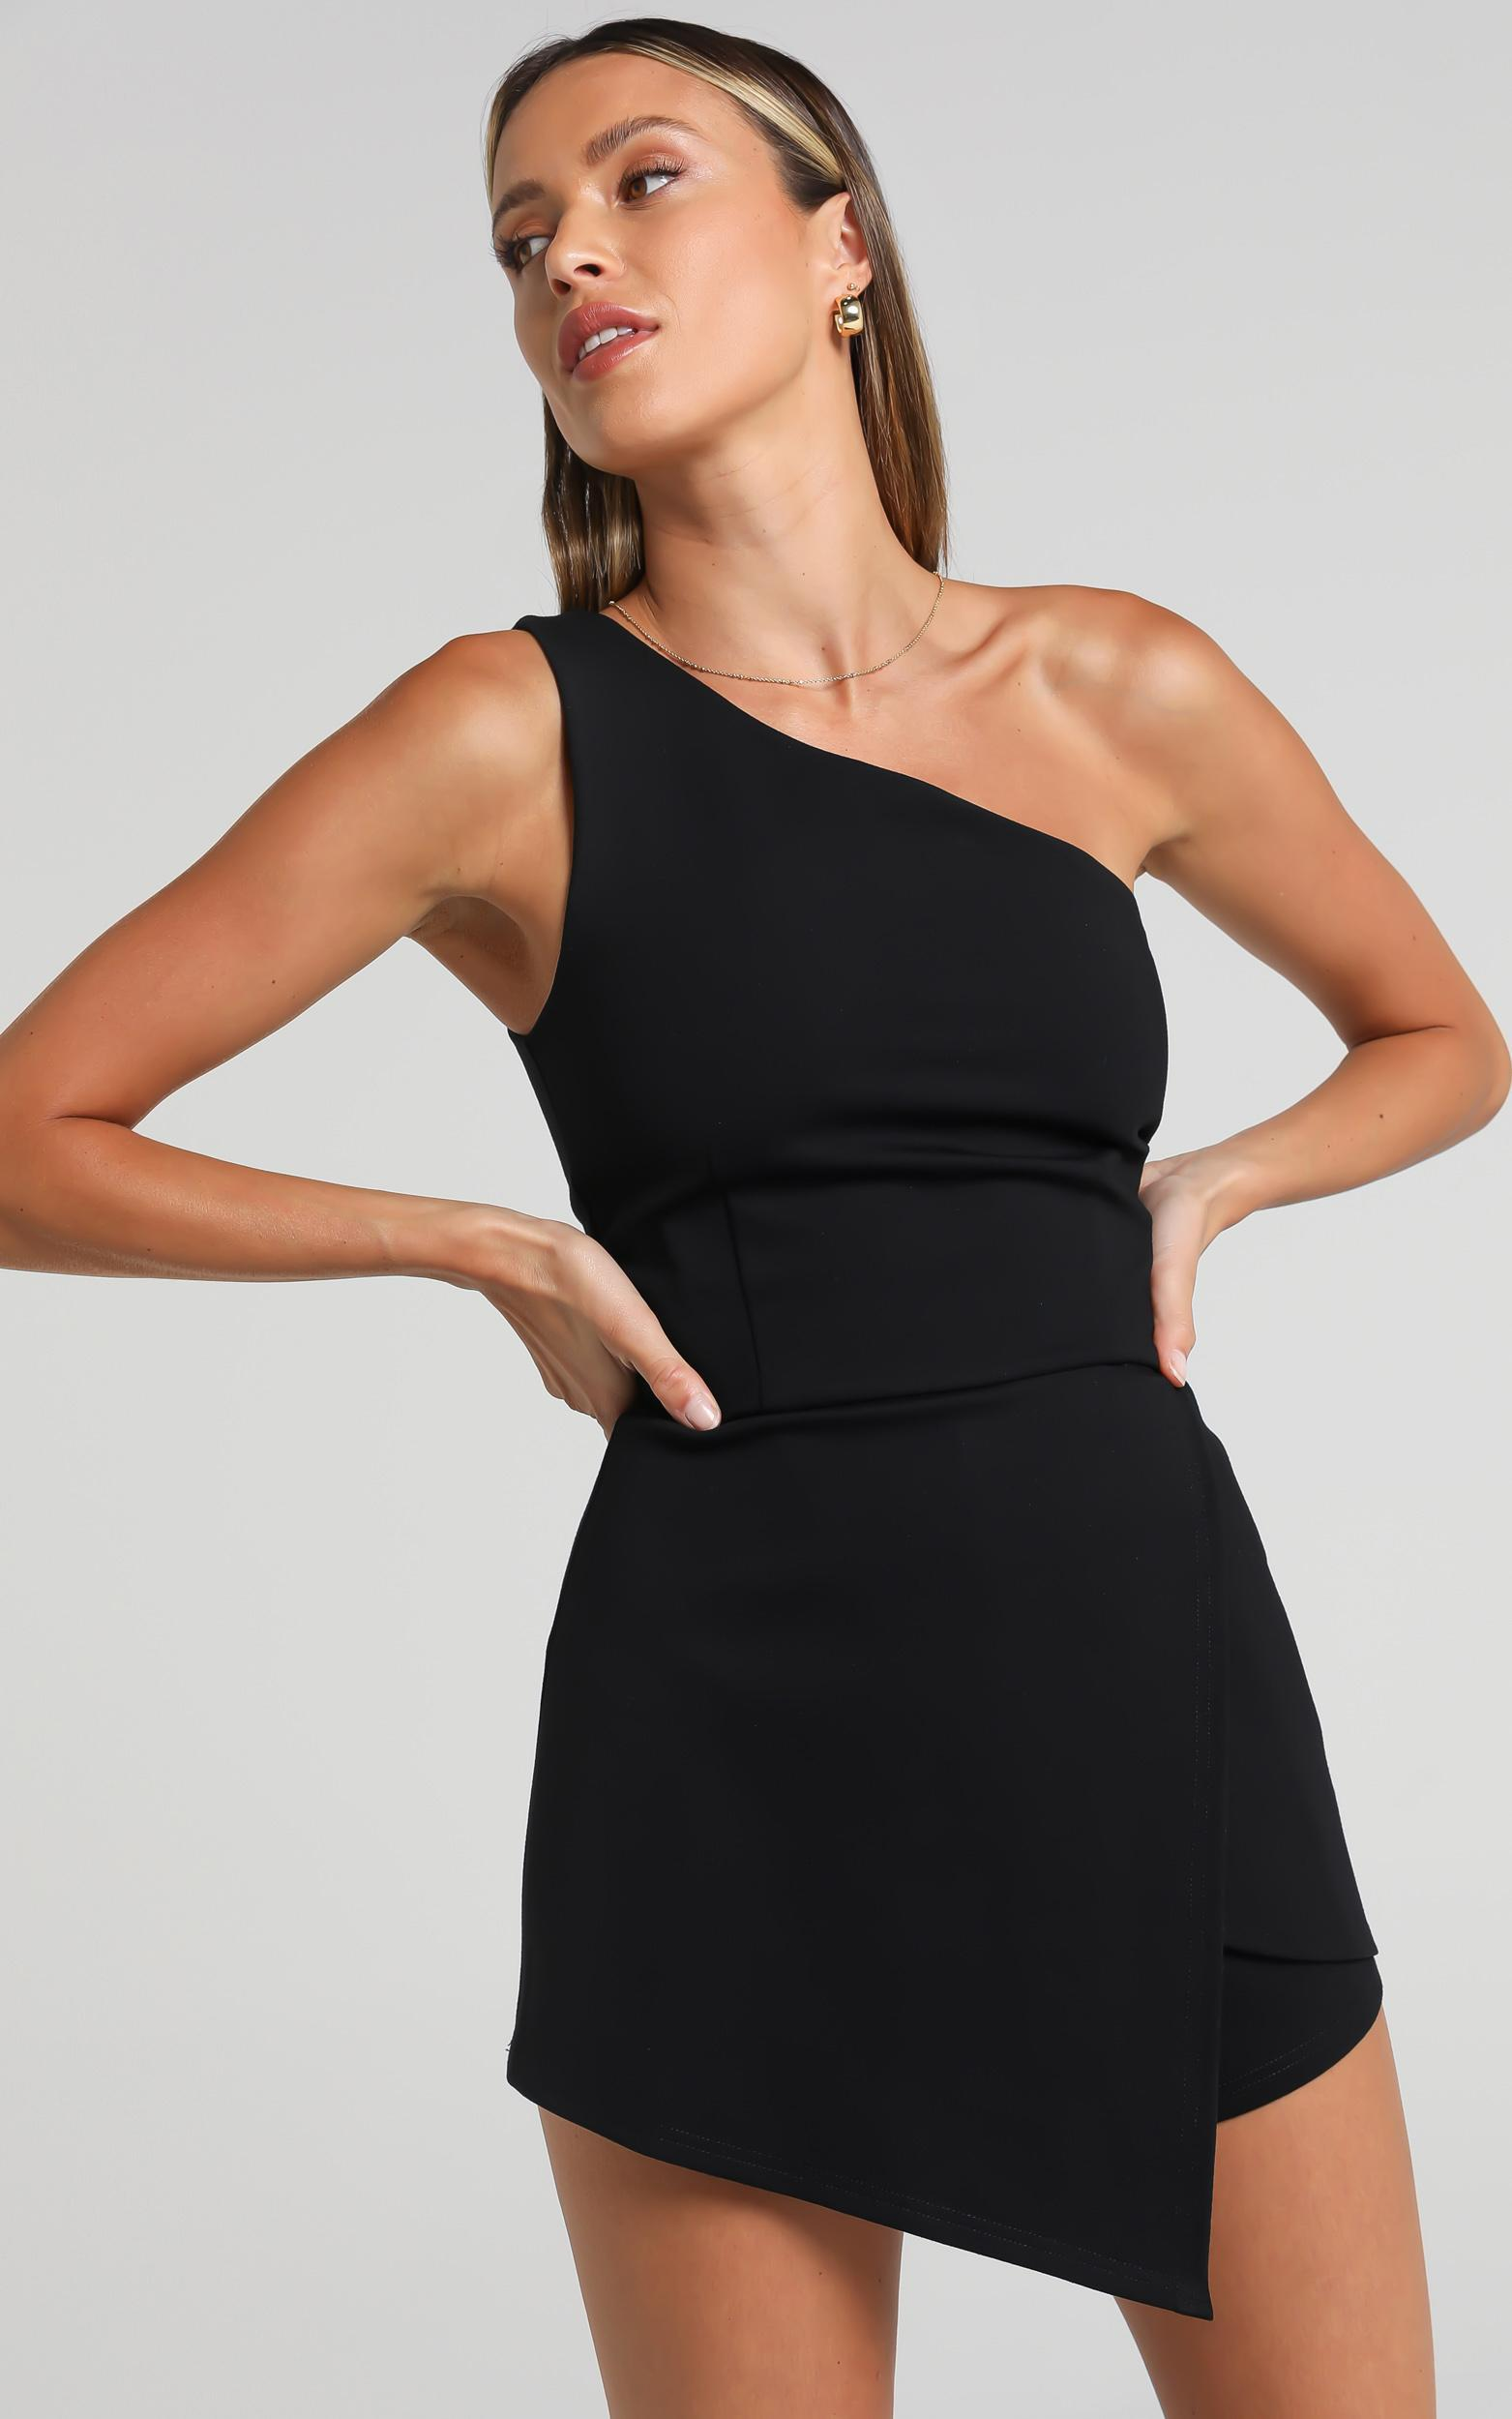 Stand another day playsuit in black - 20 (XXXXL), Black, hi-res image number null